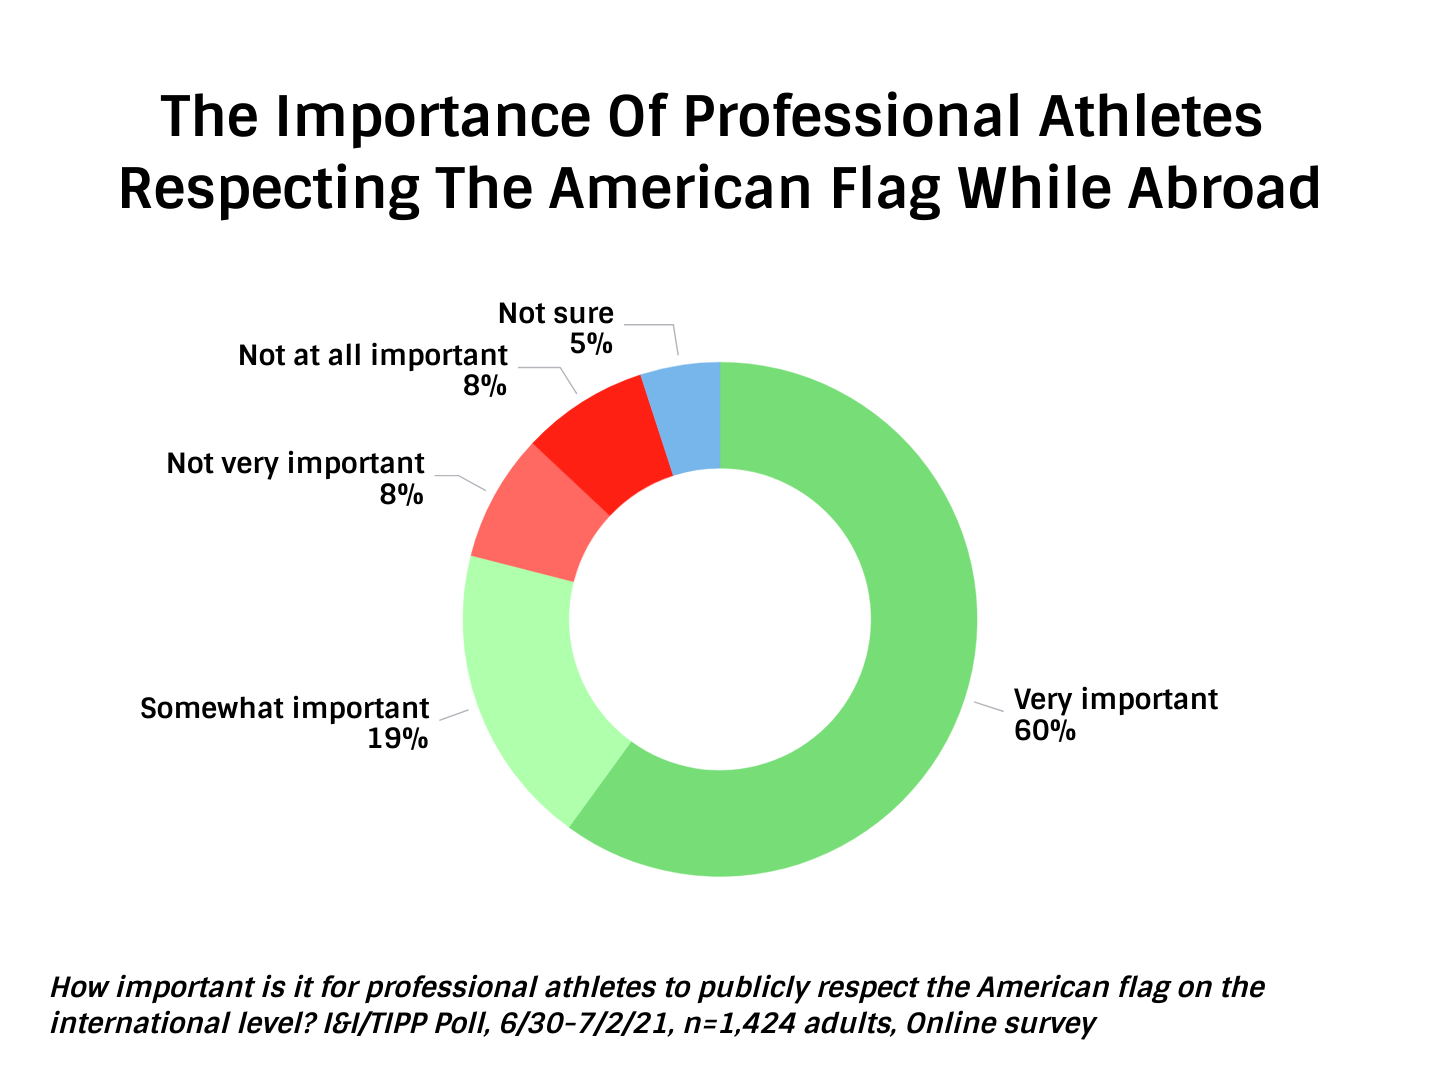 TIPP Poll Results: The Importance of Professional Athletes Respecting The American Flag While Abroad